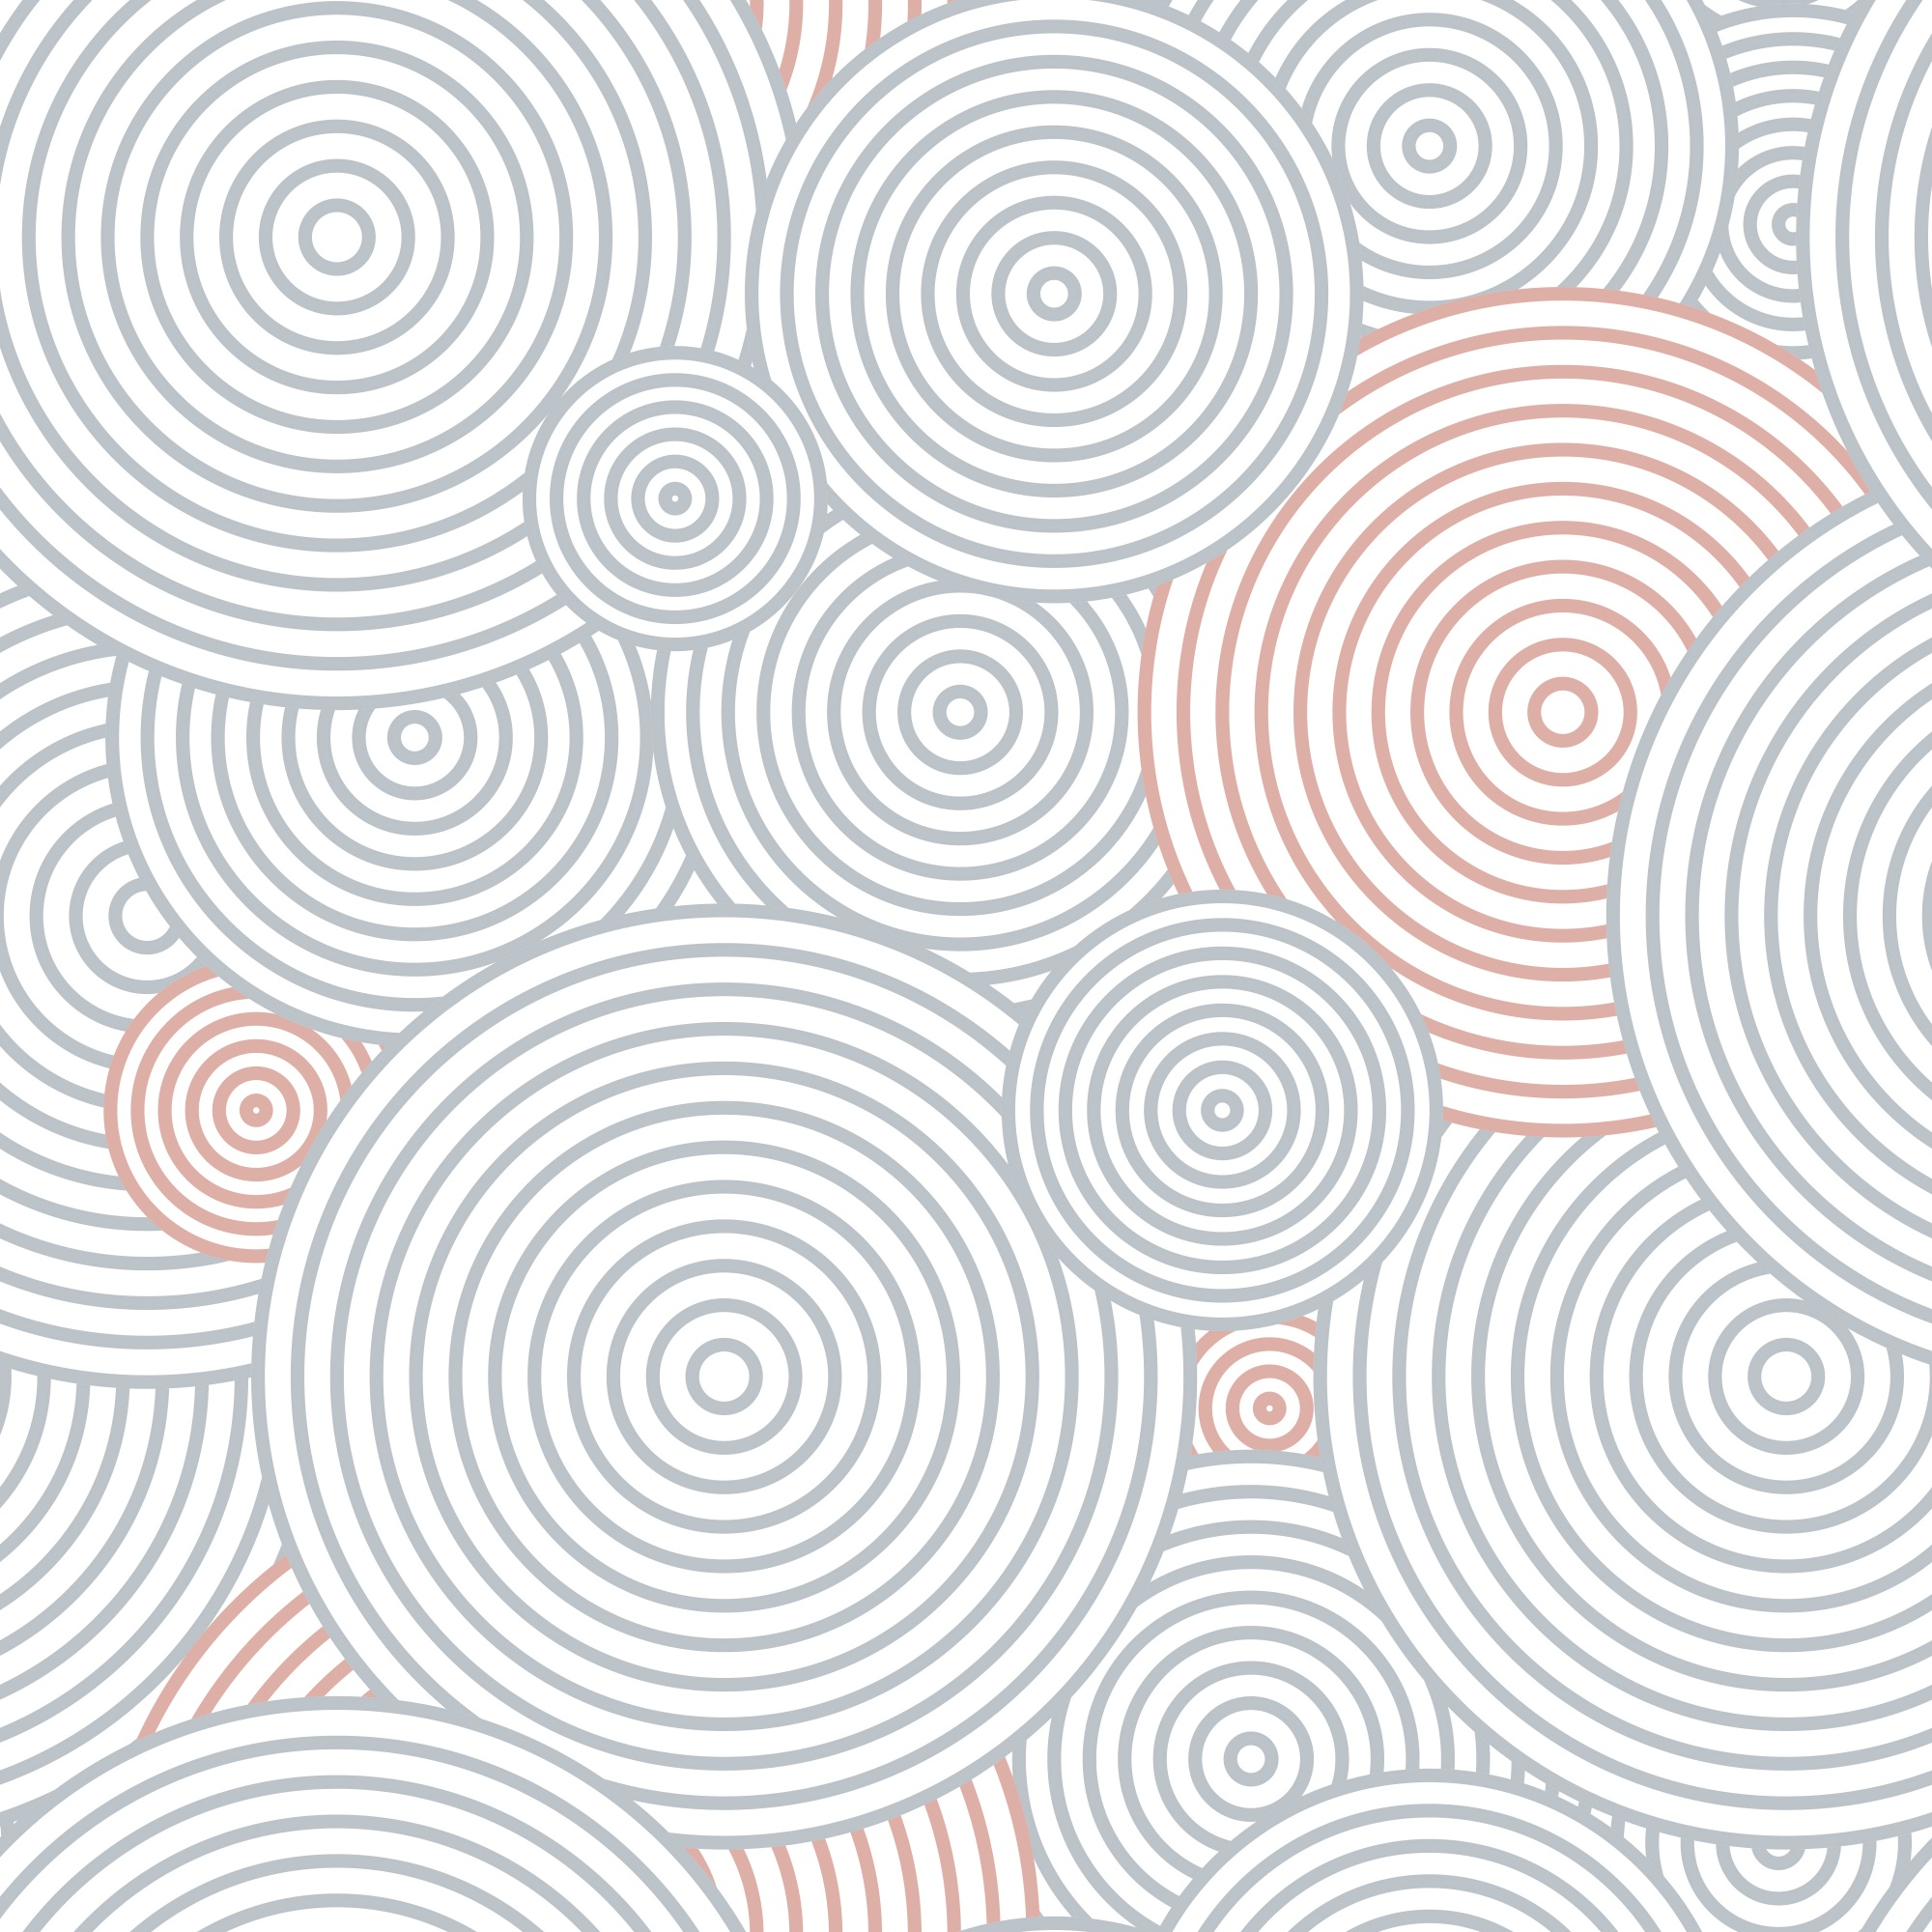 Pattern of circles